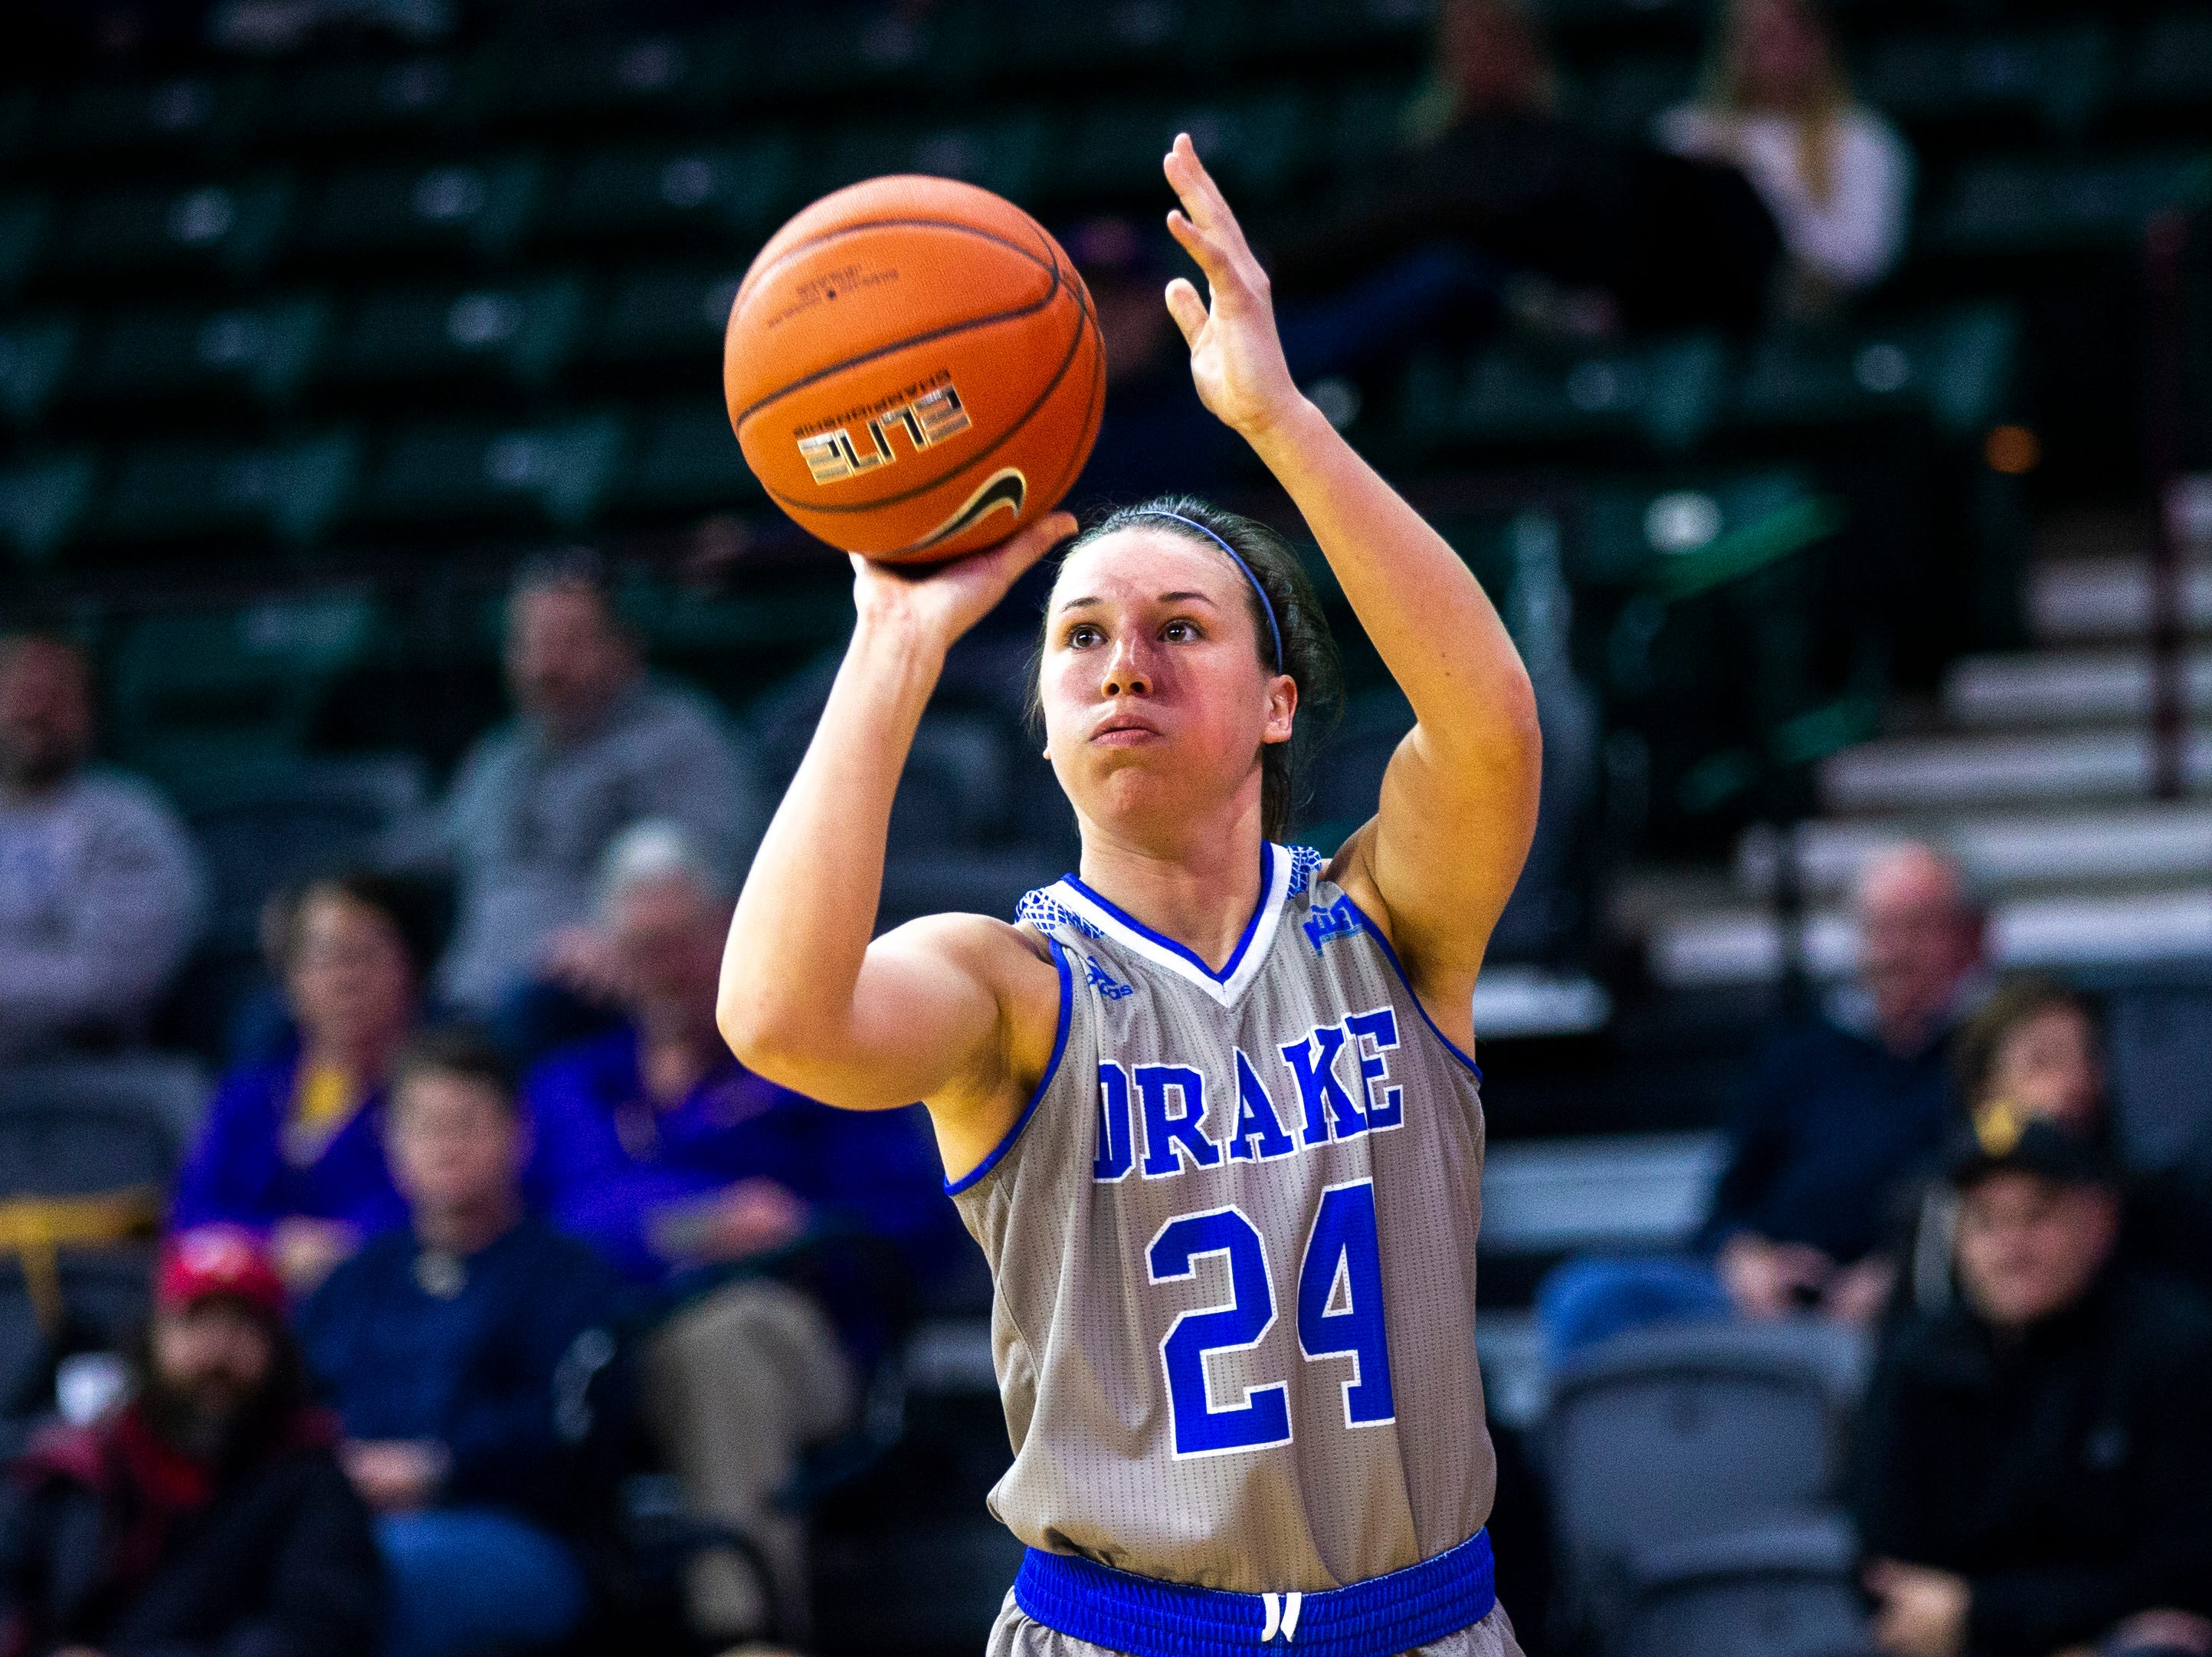 Drake guard Nicole Miller (24) shoots a 3-point basket during a NCAA Missouri Valley Conference women's basketball quarterfinal tournament game, Friday, March 15, 2019, at the TaxSlayer Center in Moline, Illinois.